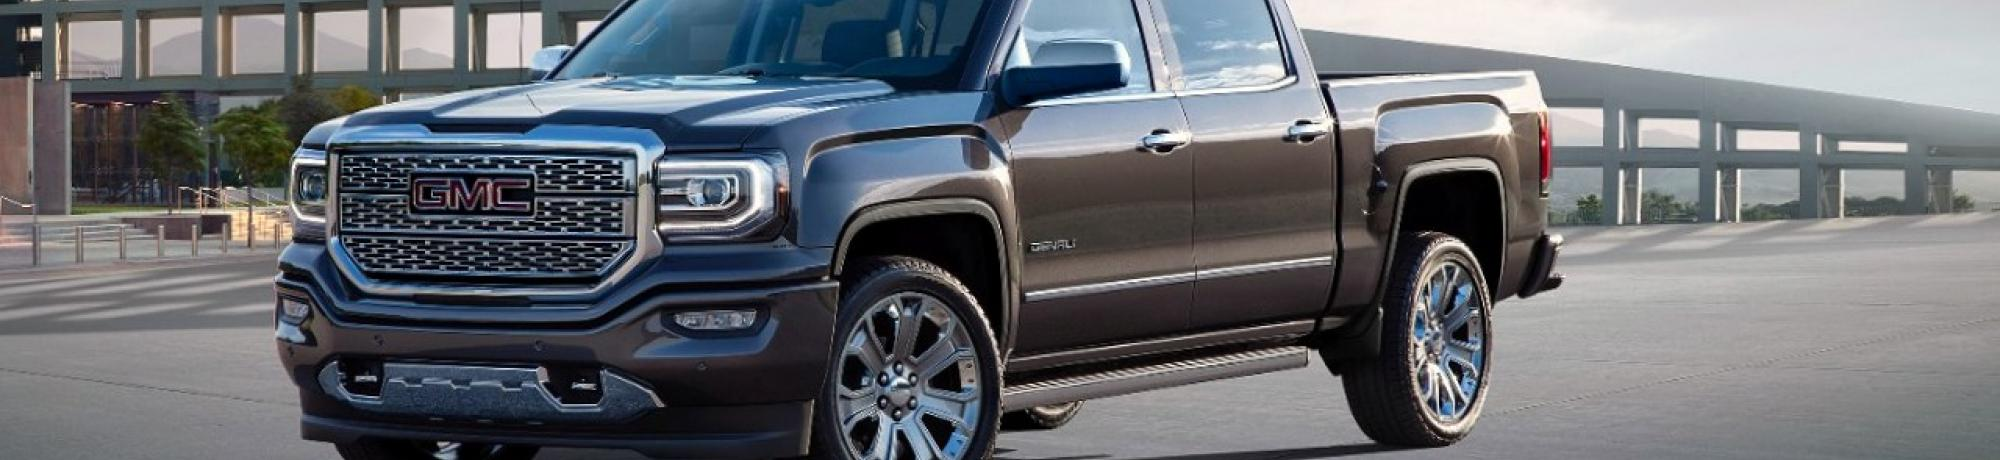 2016-GMC-Sierra-Denali-Ultimate-033.jpg